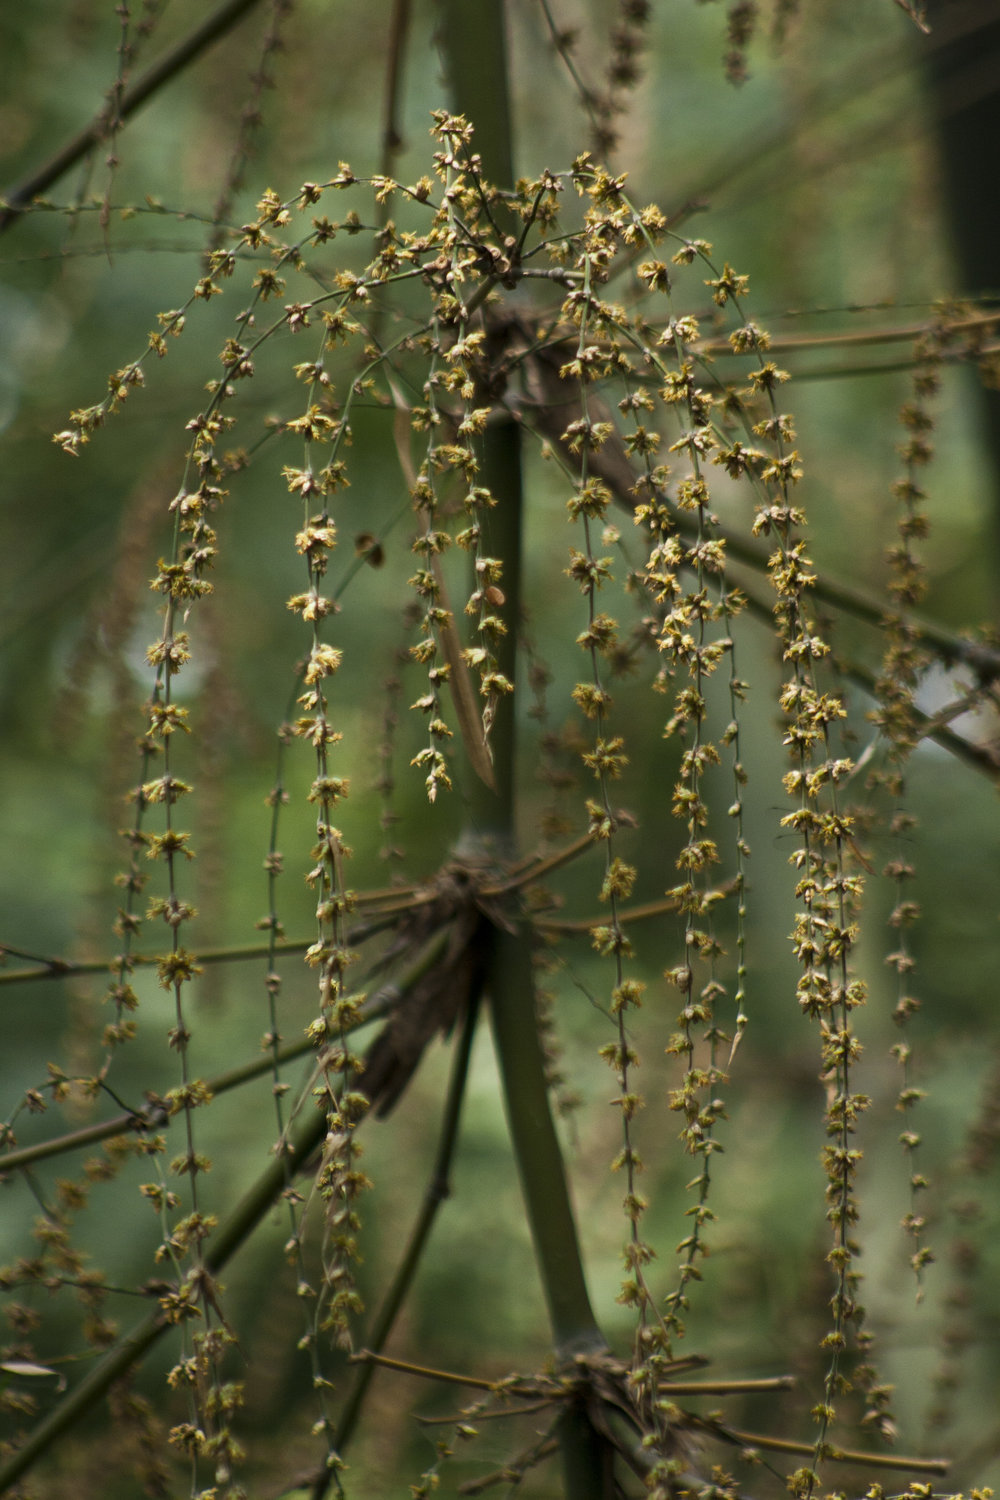 Christmas-time comes once year, but the bamboo flowers once in sixty. Image by Siddarth Machado.